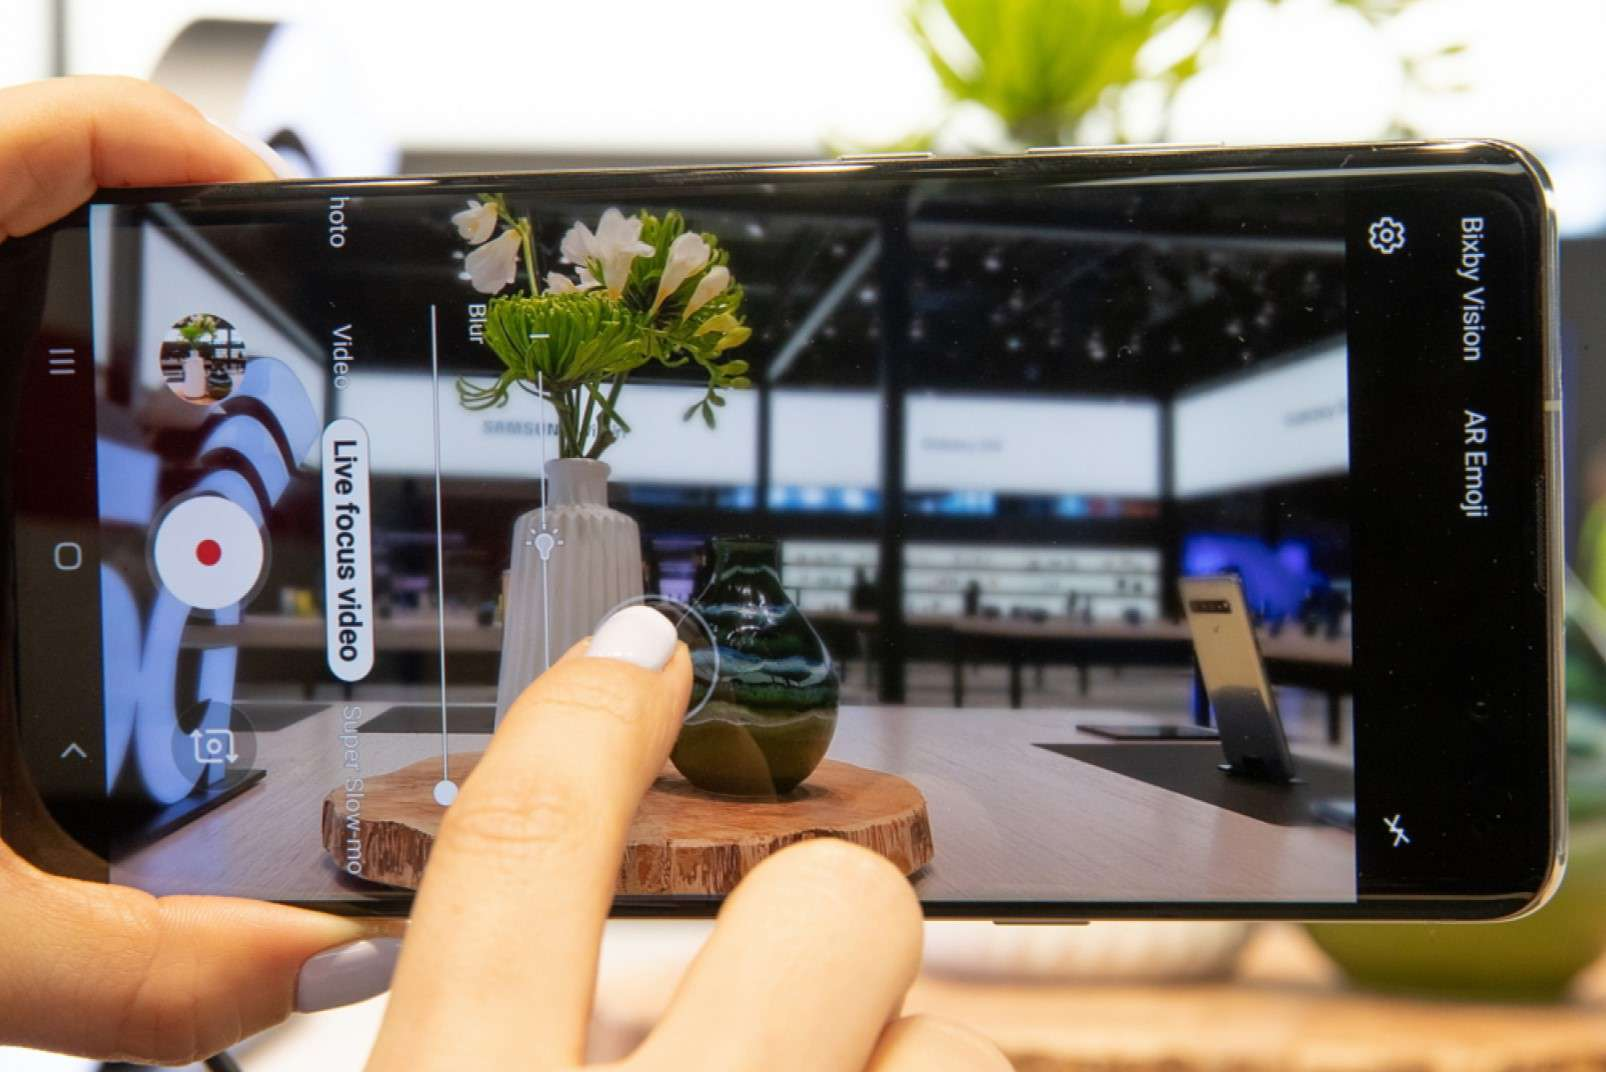 Samsung at the Mobile World Congress 2019